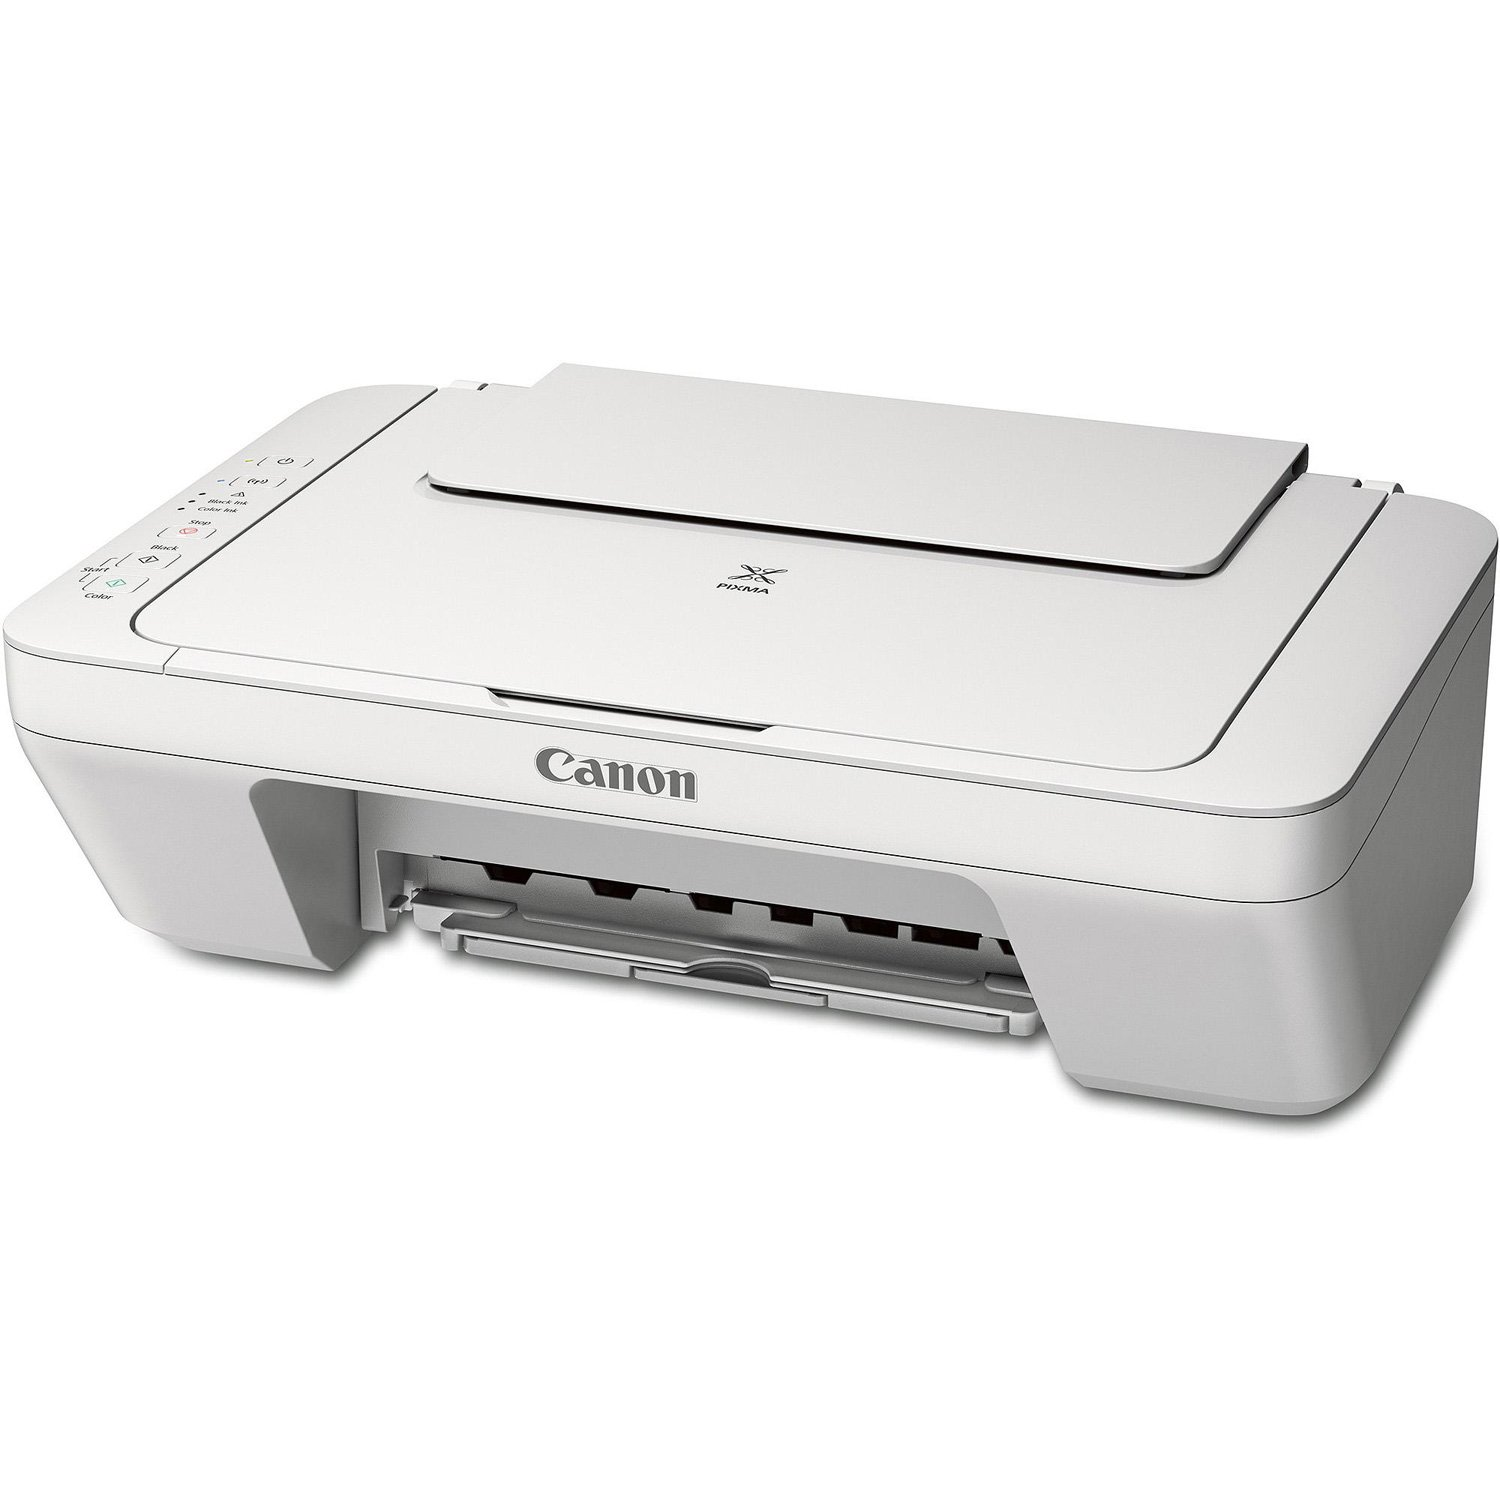 Dec 06, · My HP ENVY printer will print in color when copying, but only black & White when asked to print from Win This thread is locked. You can follow the question or vote as helpful, but you cannot reply to this thread.